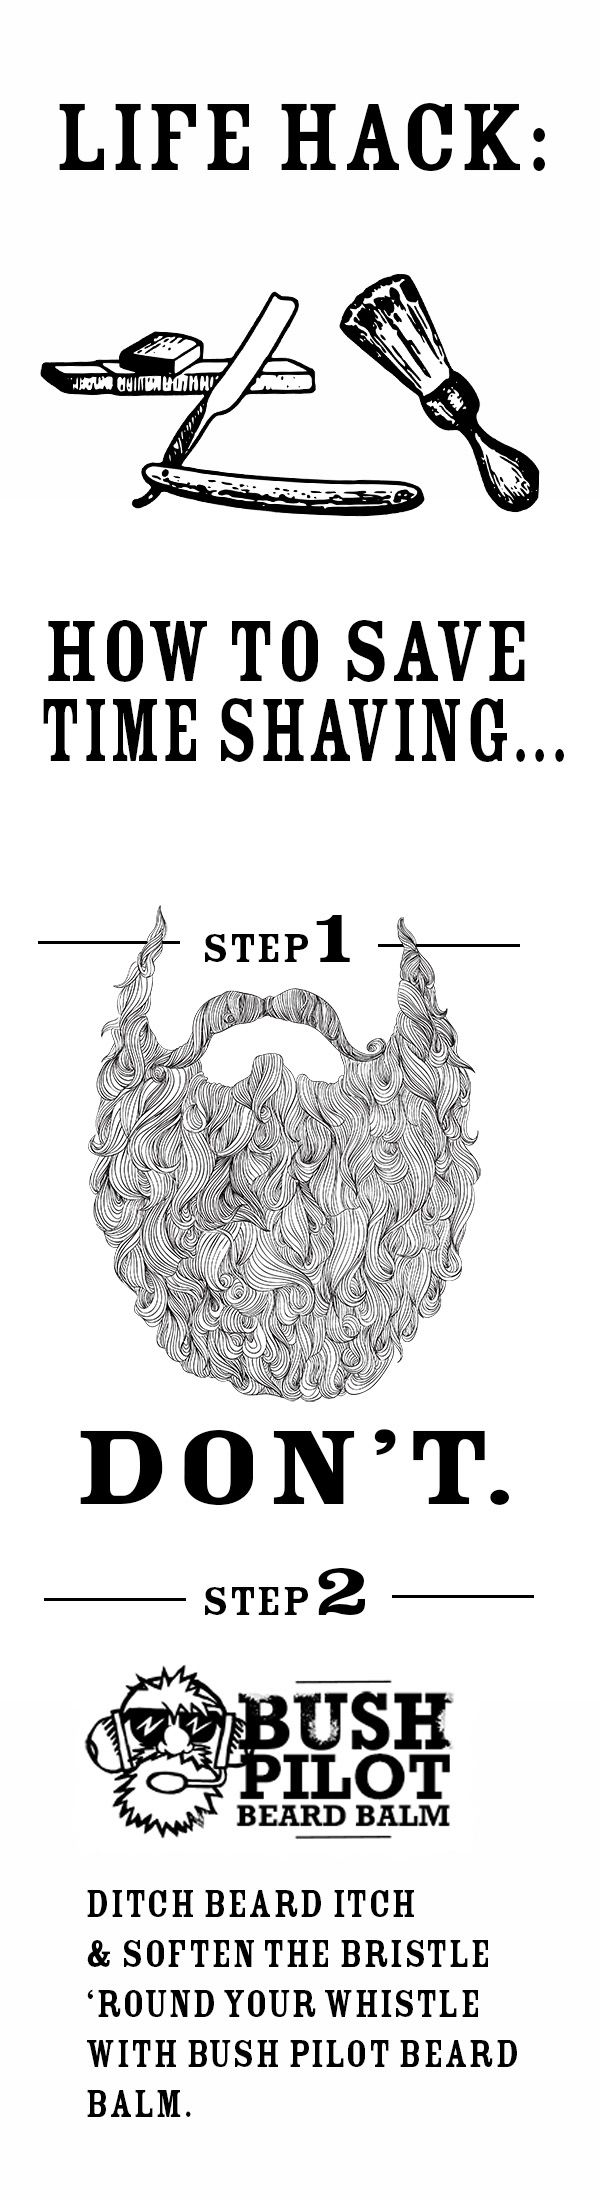 Life hack! How to save time while shaving. Don't. Instead, promote beard envy by using Bush Pilot Beard Balm. It softens the bristle 'round your whistle and helps ditch beard itch. Beard quotes!